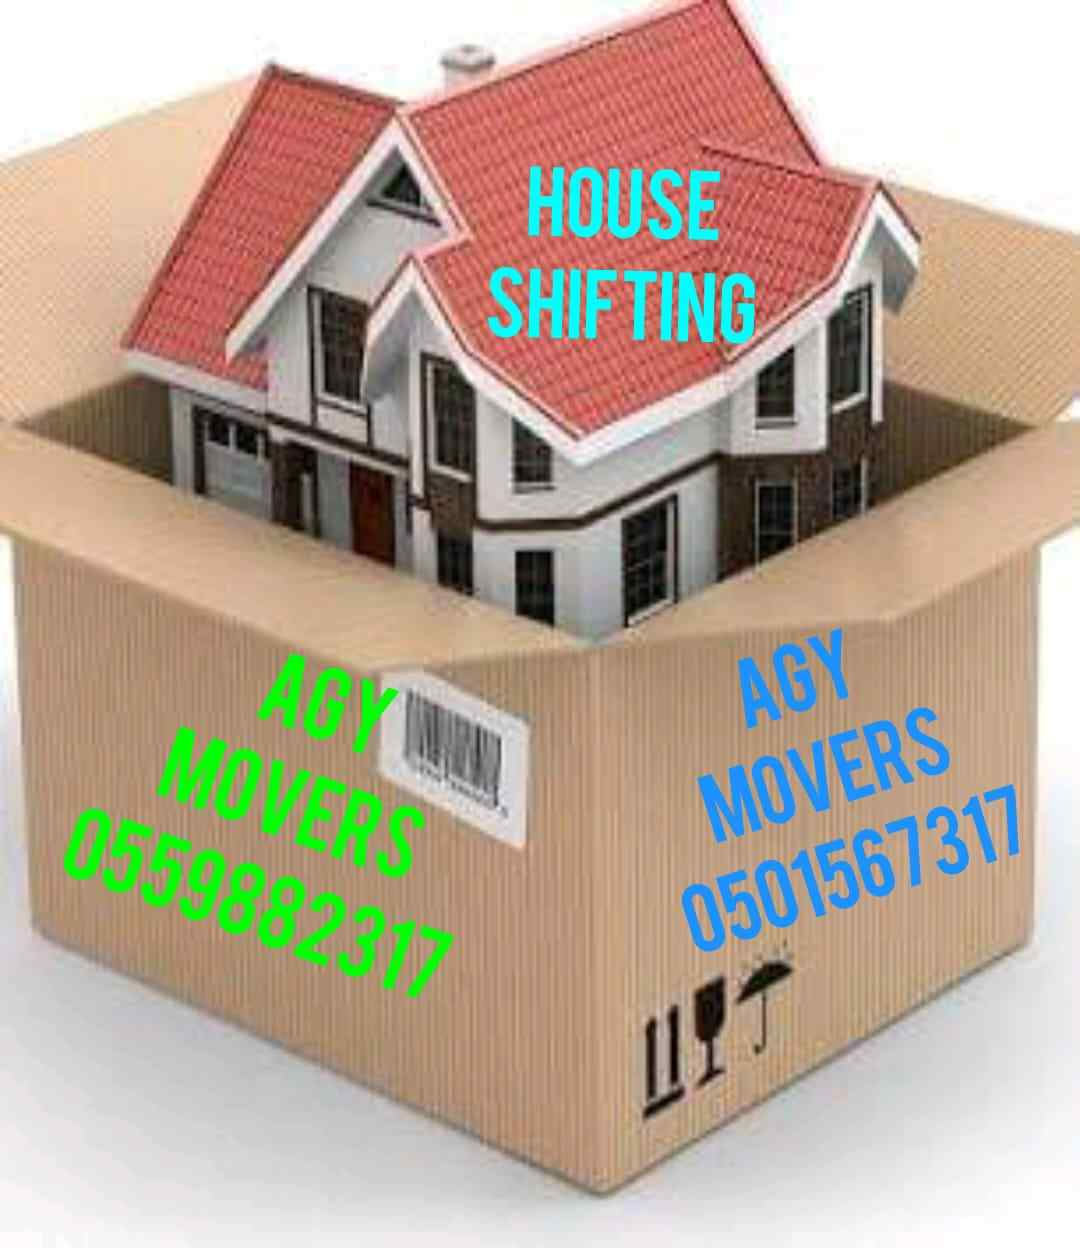 best movers and packers in Dubai at Cheap Prices for House Shifting